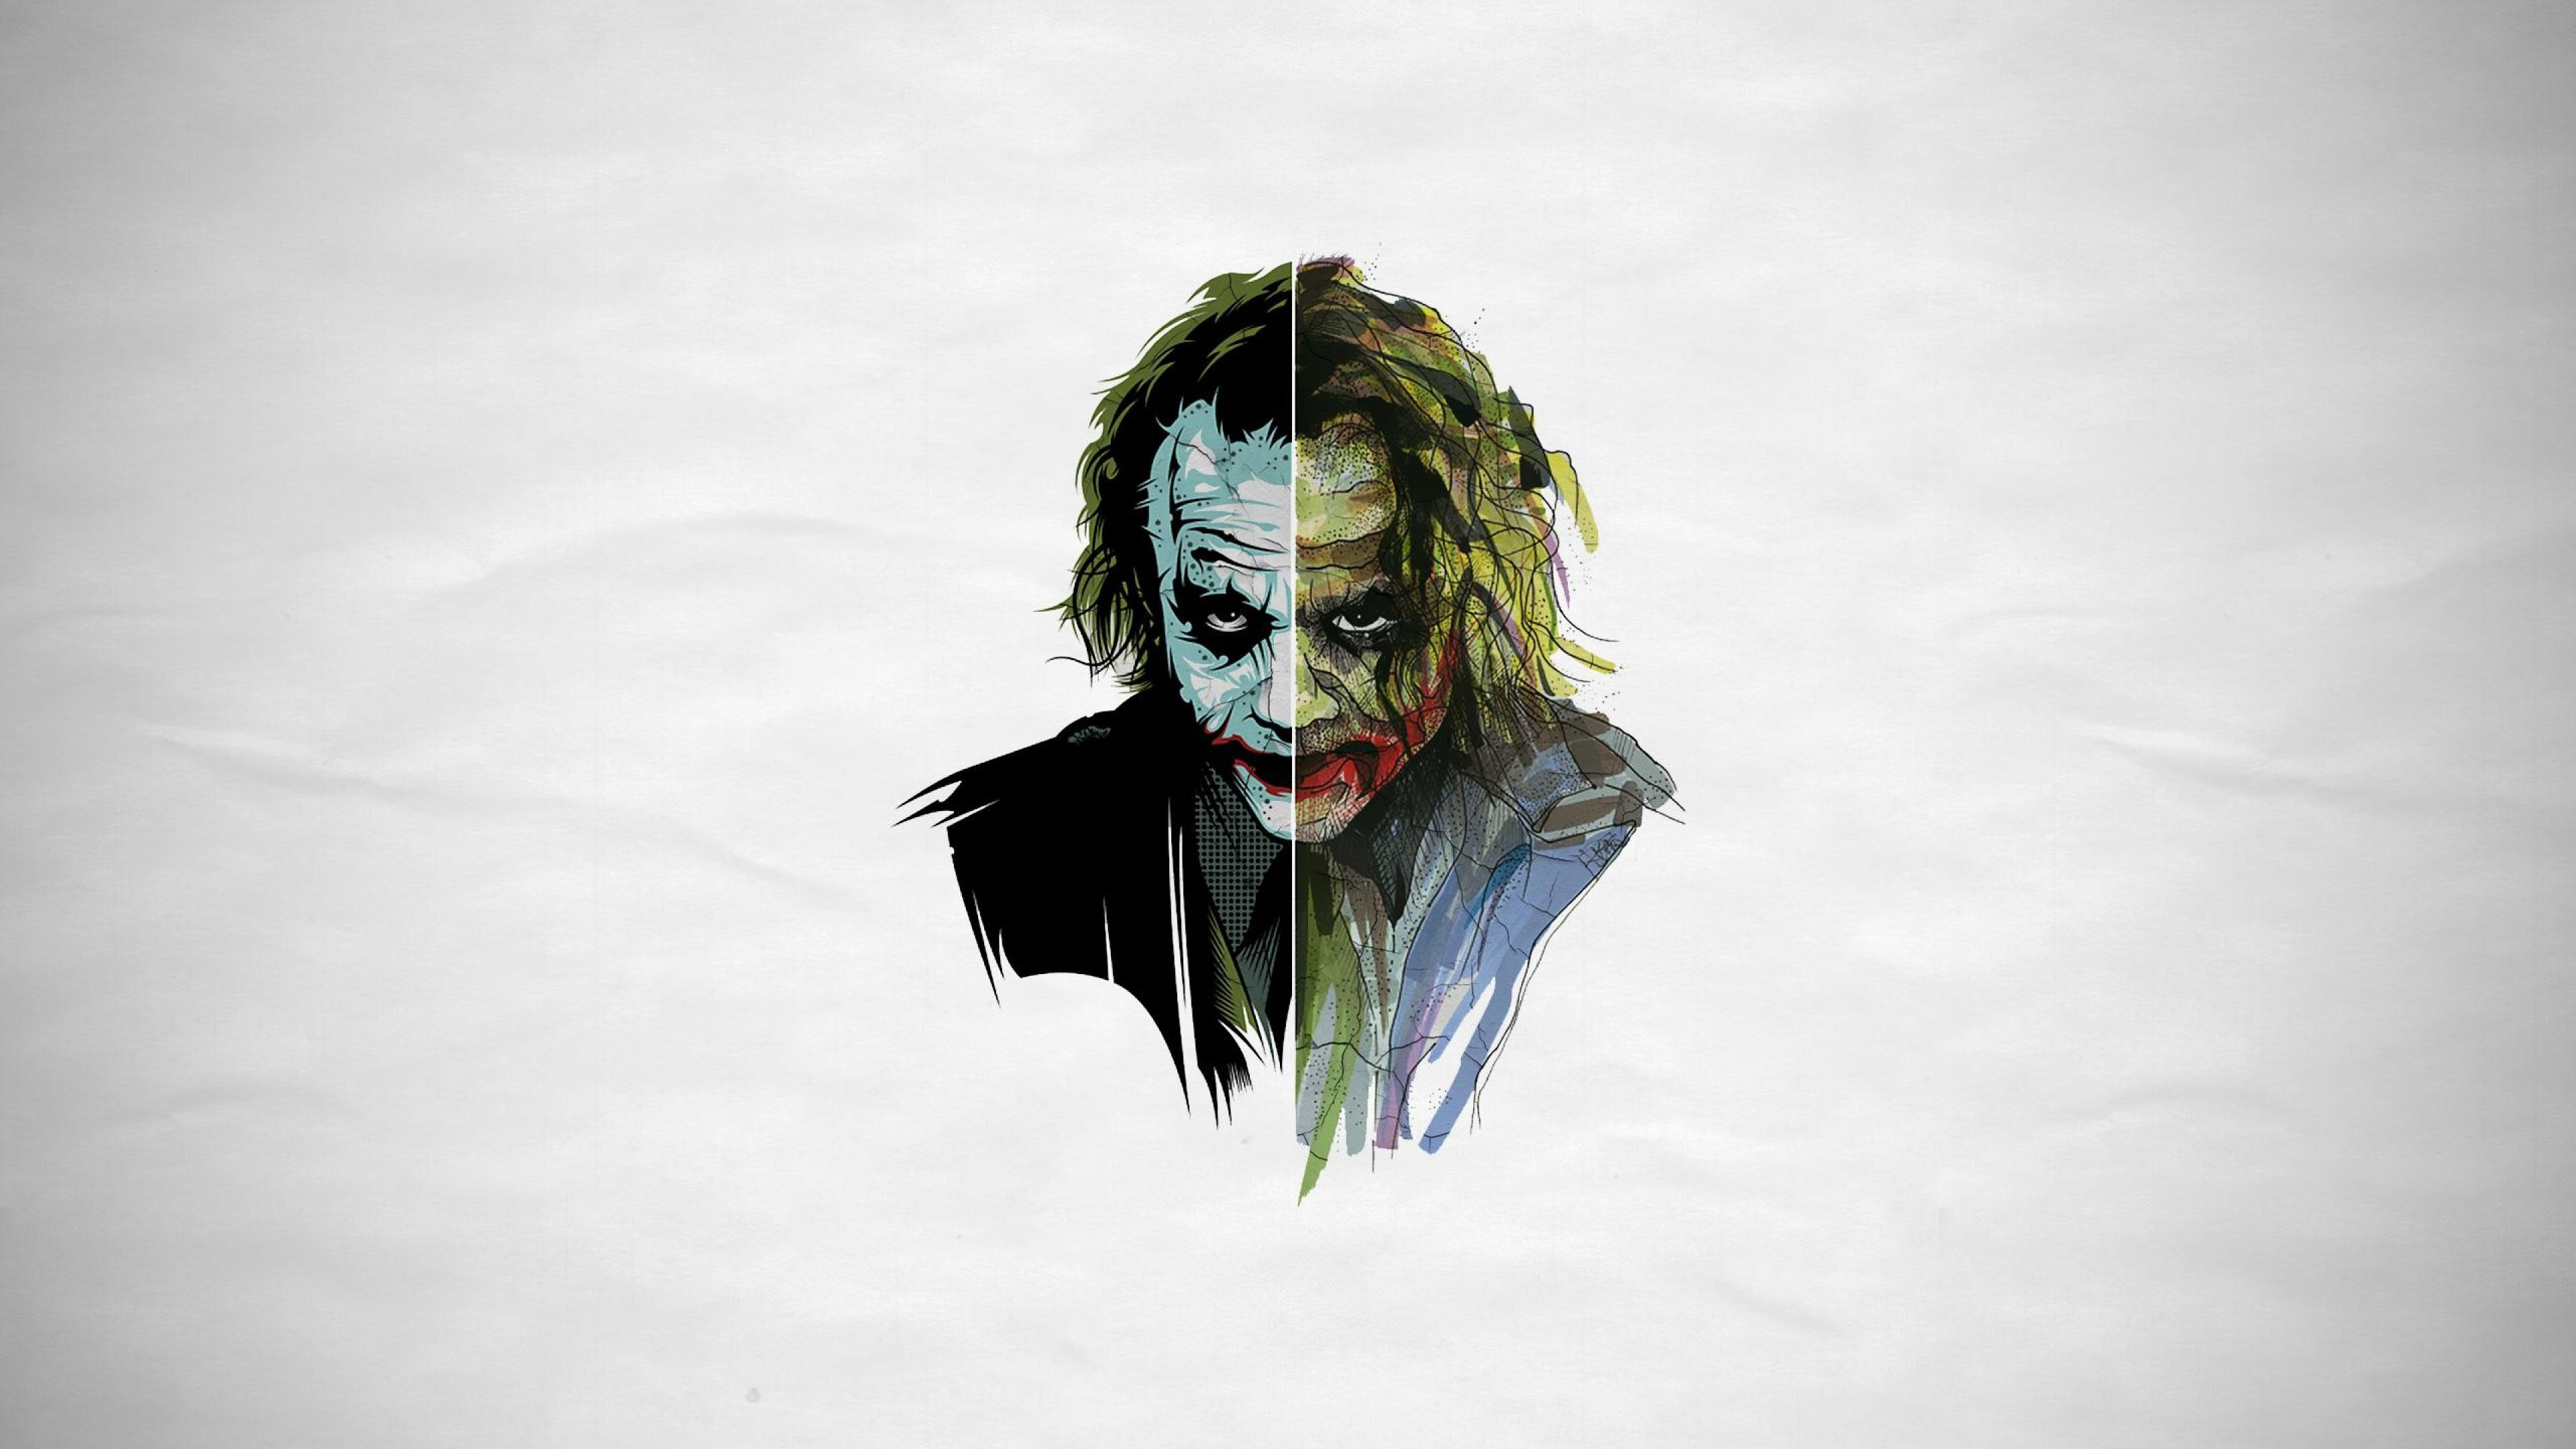 Joker Hd Wallpapers: 4K Ultra HD Joker Wallpapers HD, Desktop Backgrounds